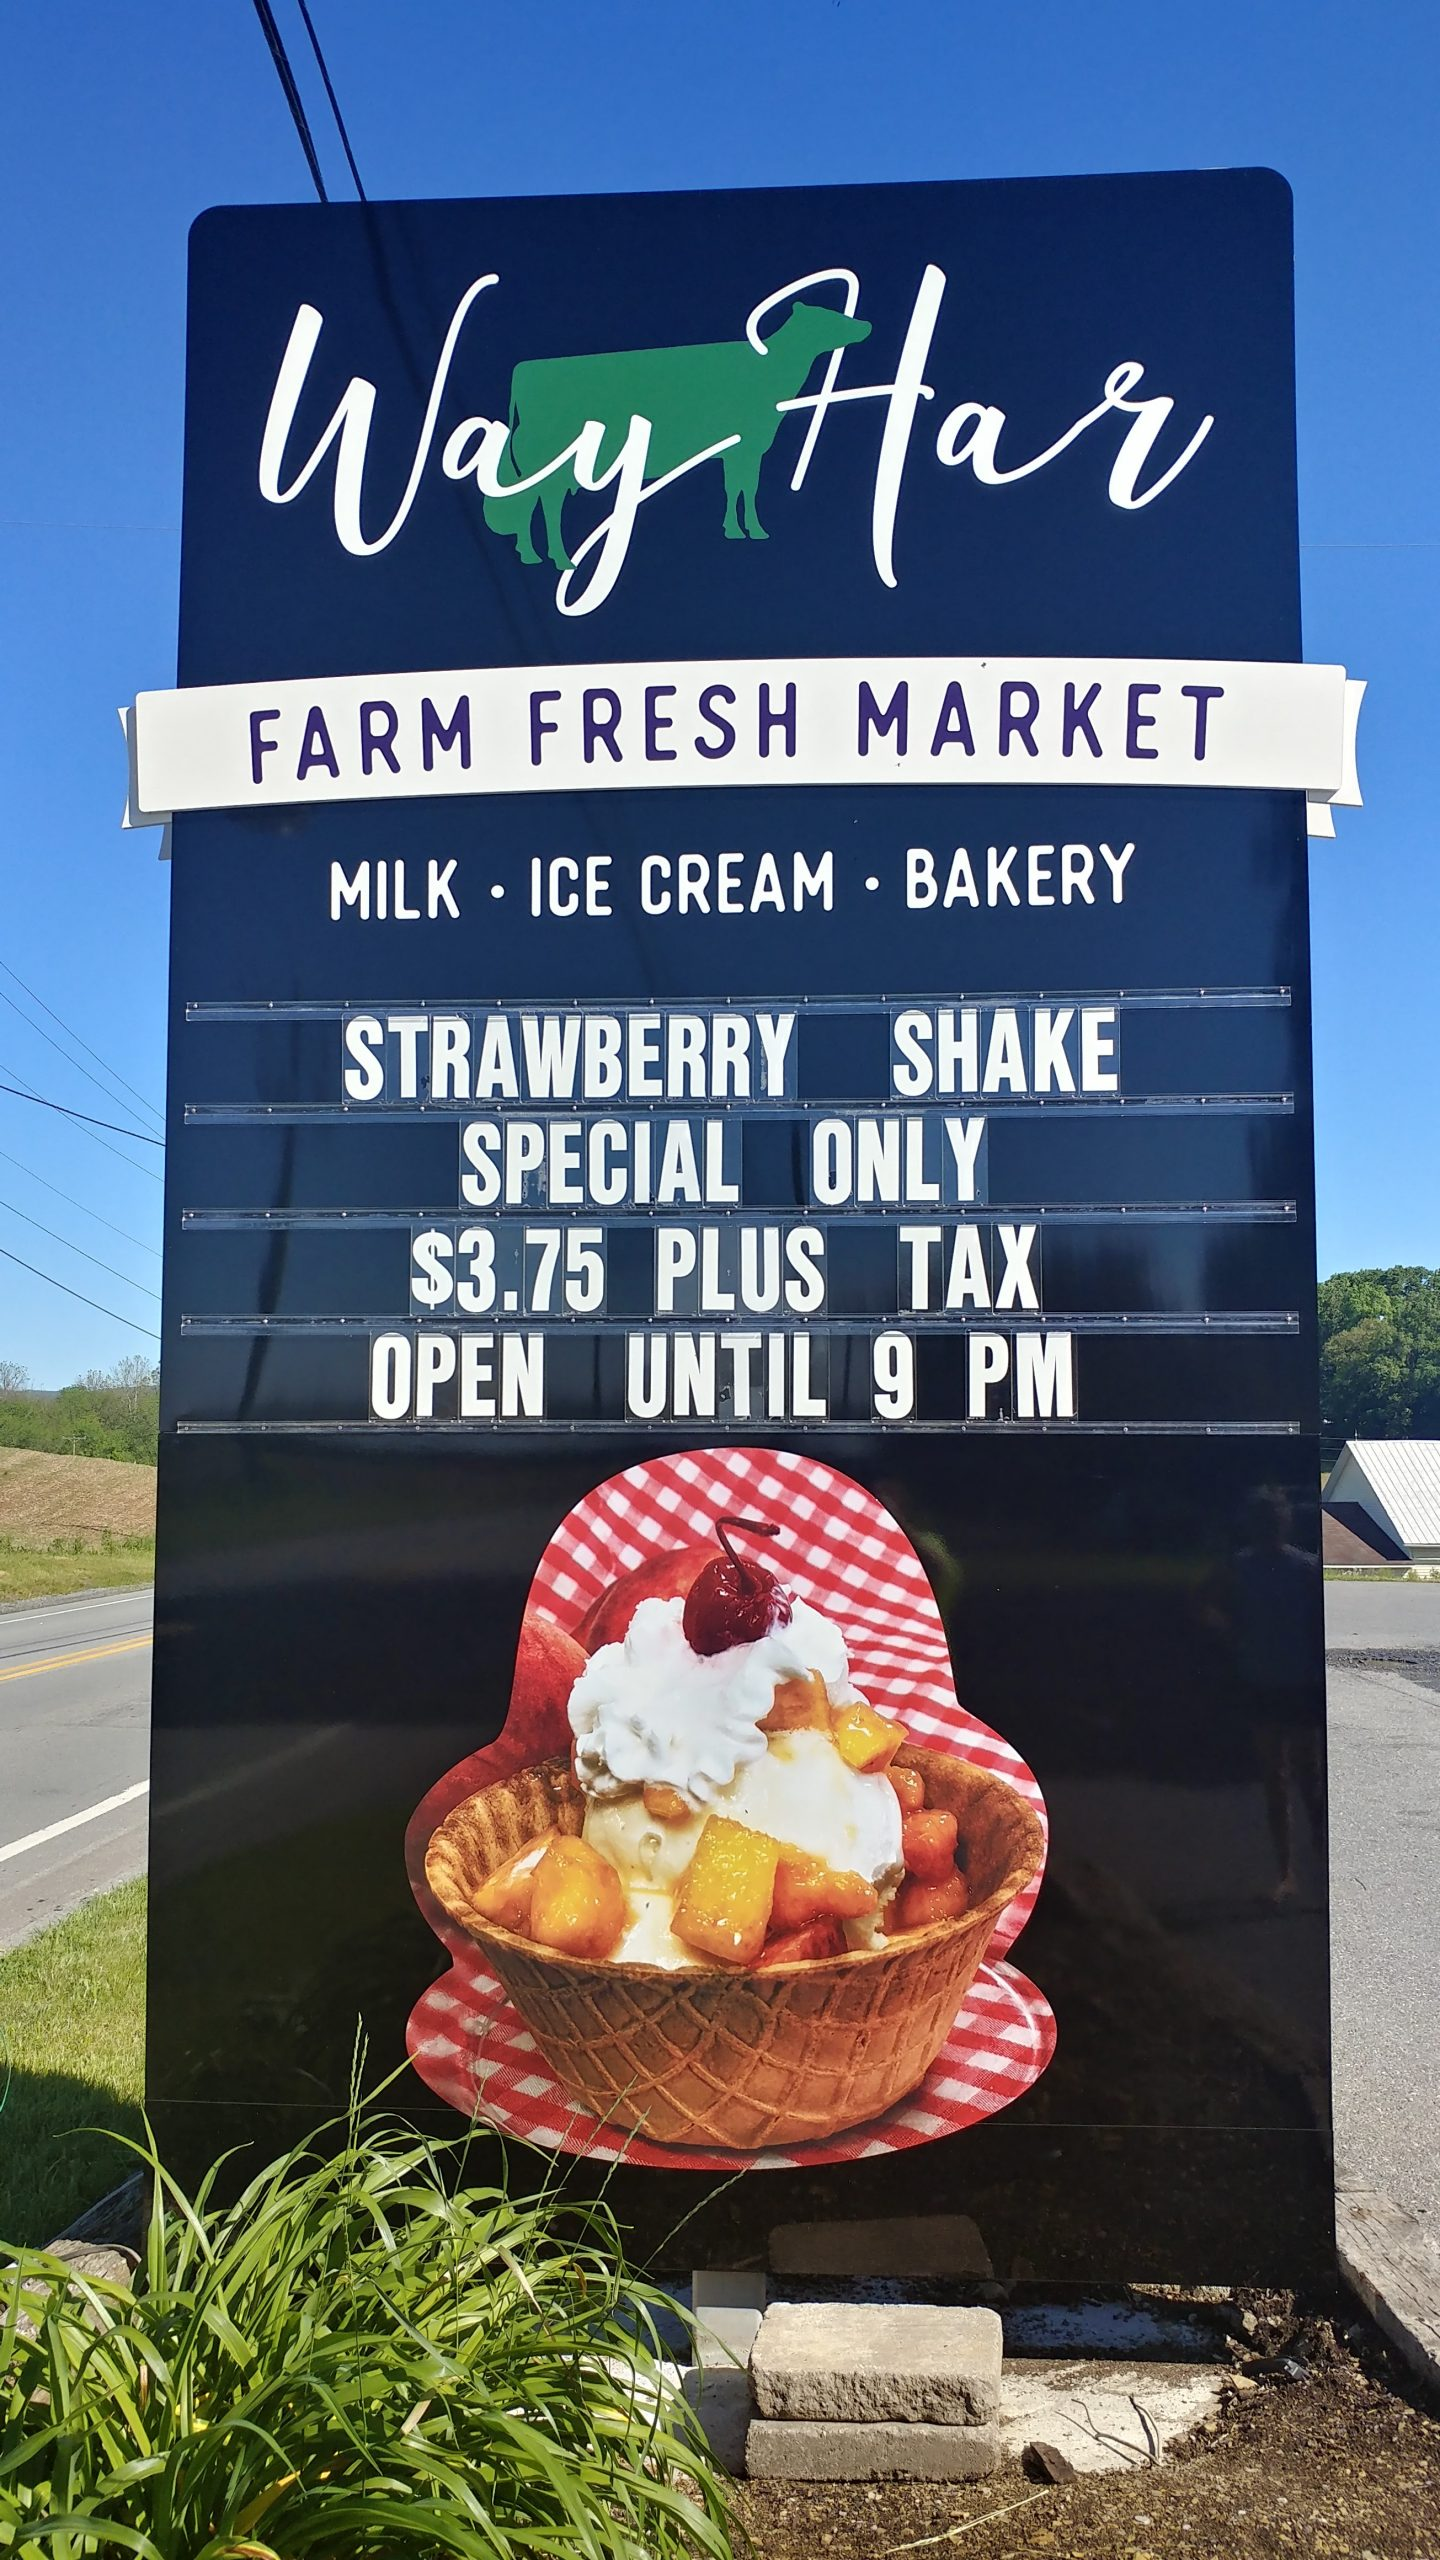 Way Har Farm Fresh Market - Milk, Ice Cream and Bakery